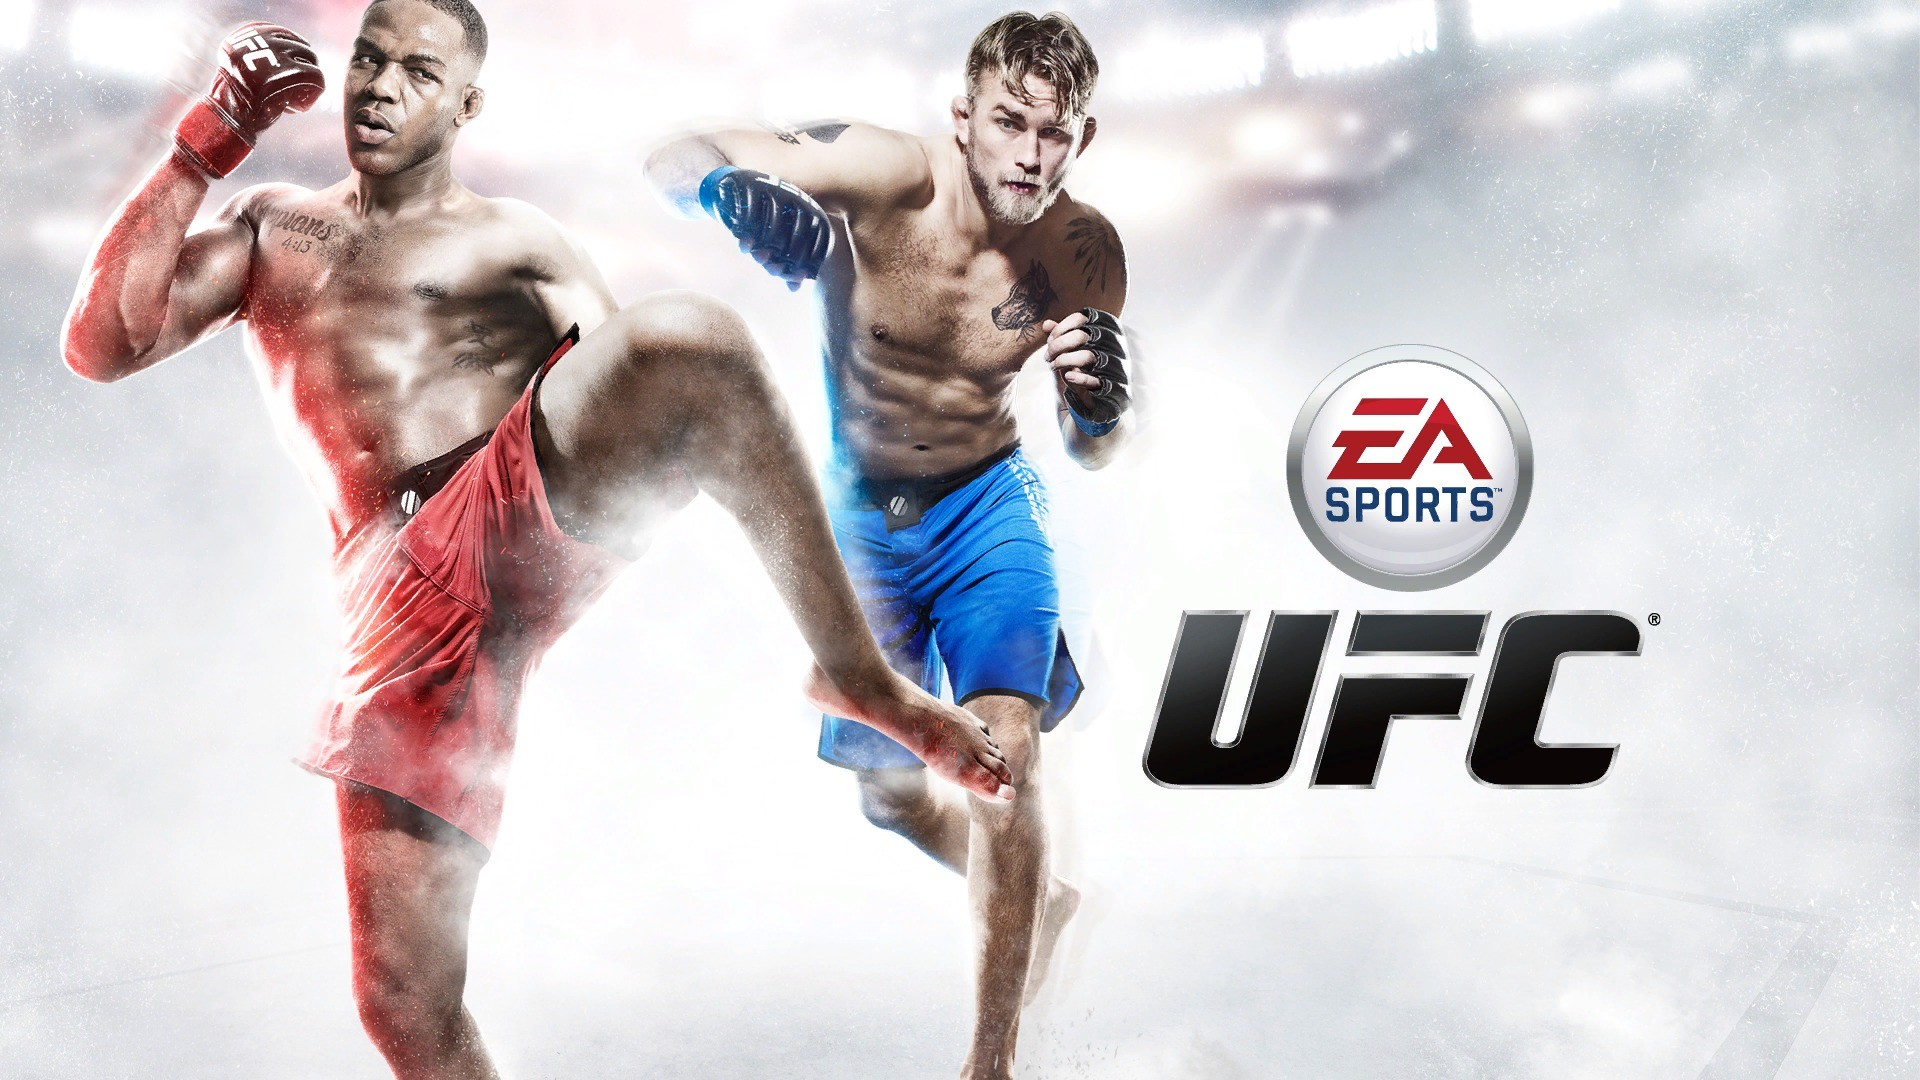 Ea sports ufc hd games 4k wallpapers images backgrounds ea sports ufc voltagebd Gallery